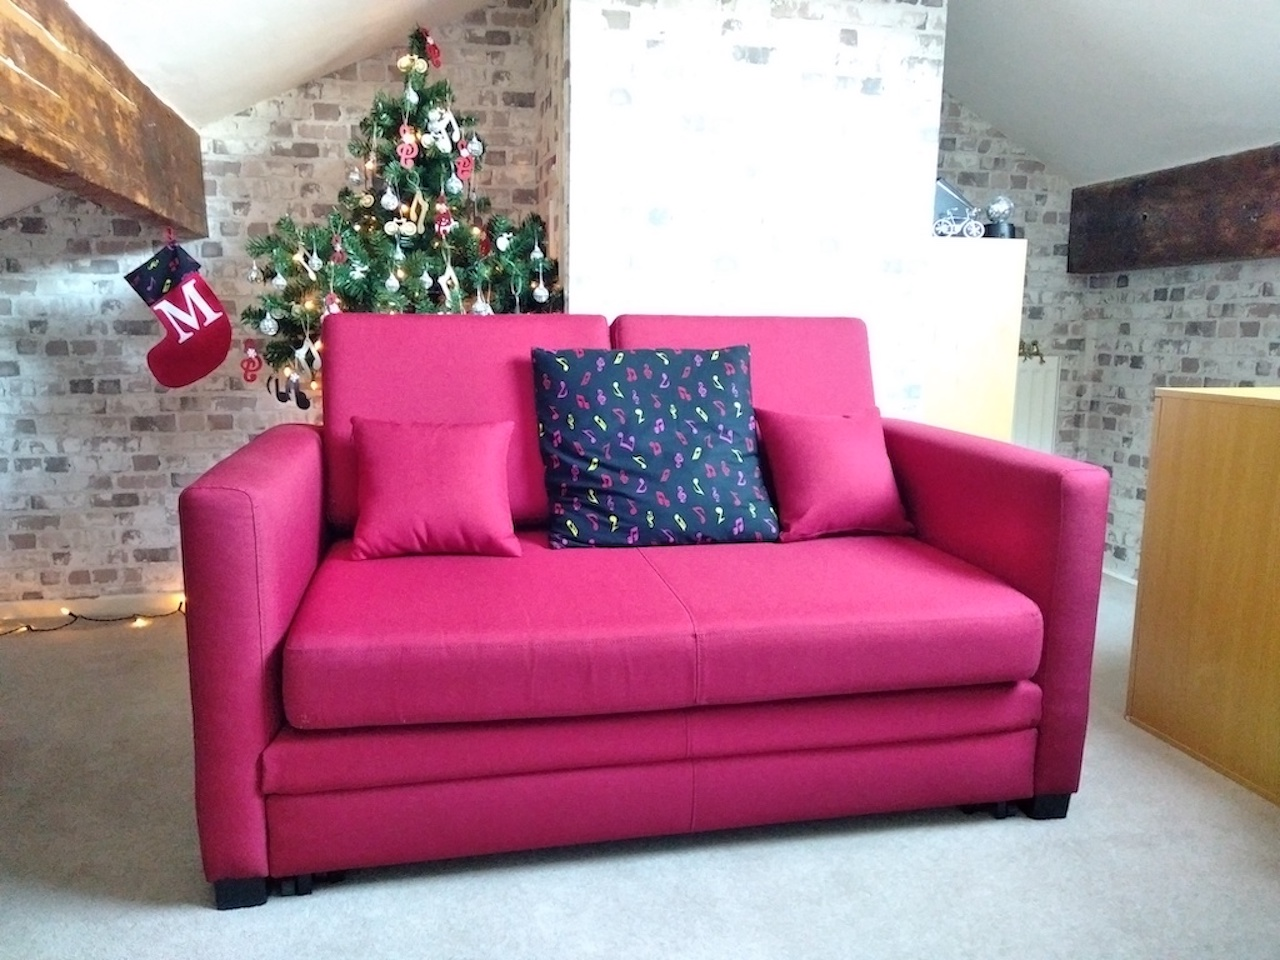 Red sofa bed for two people Boom